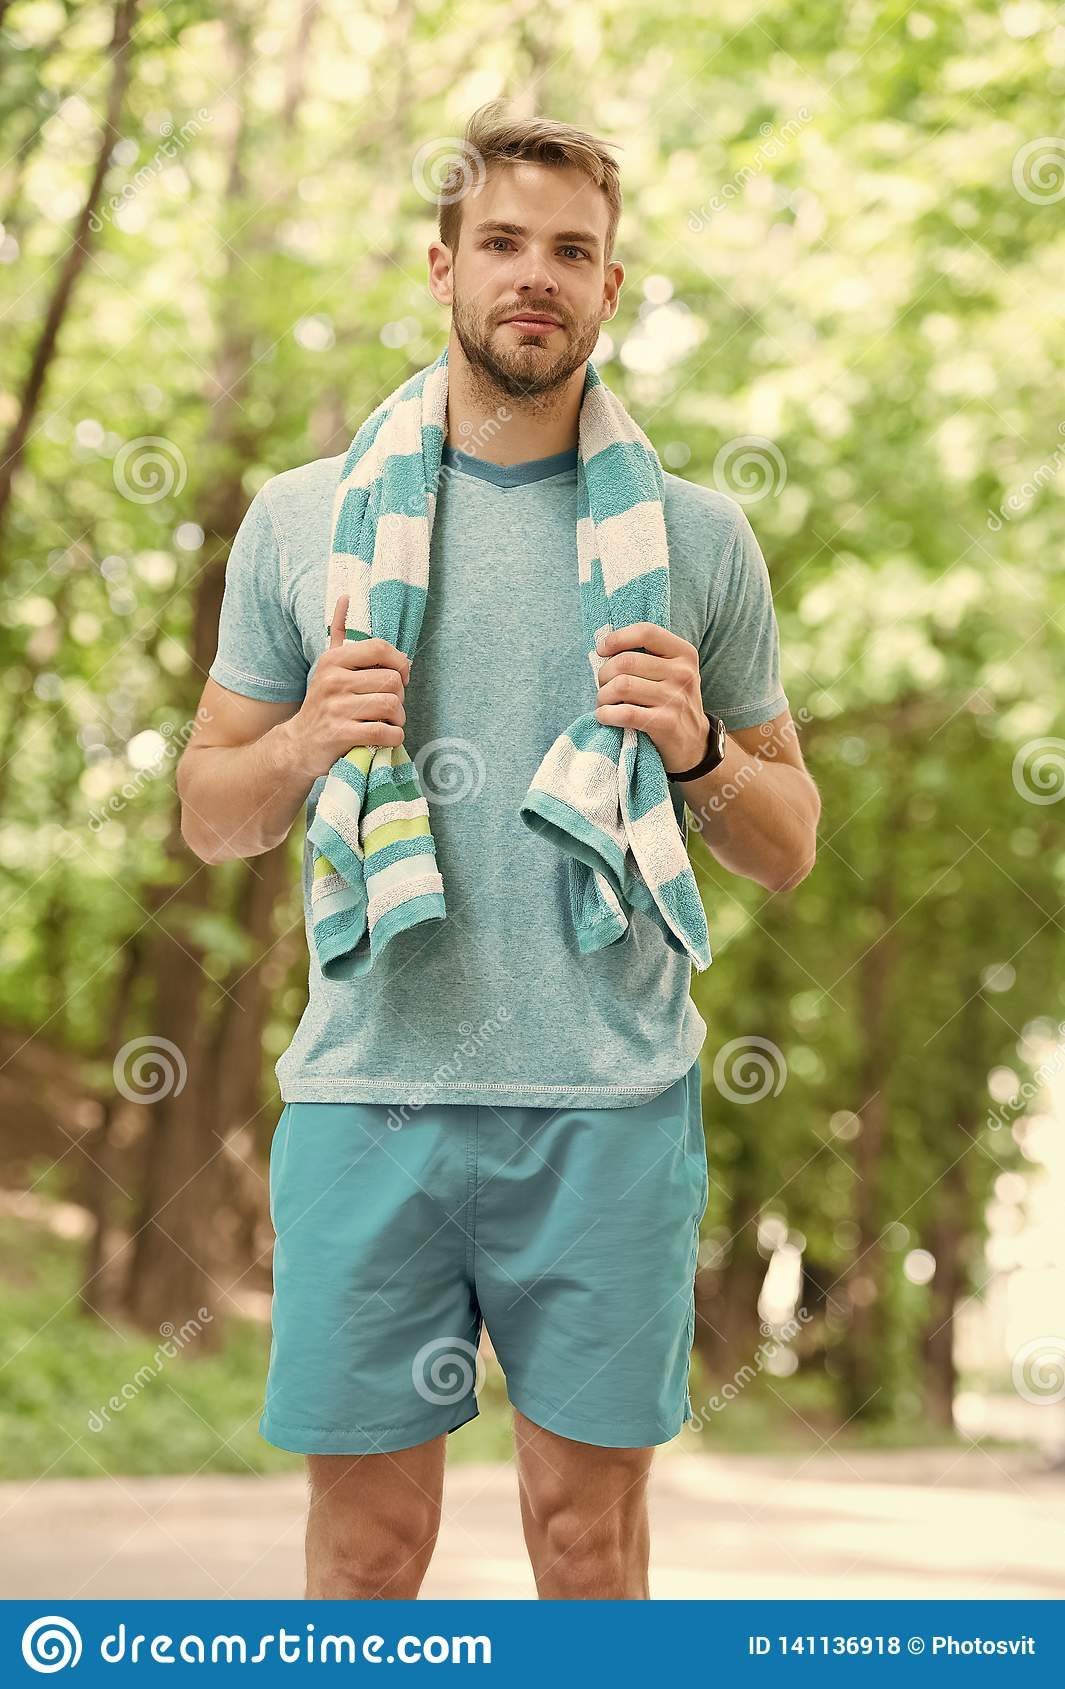 Man with towel on natural landscape. Sportsman just after training. Sweaty and tired. Summer beach time and vacation